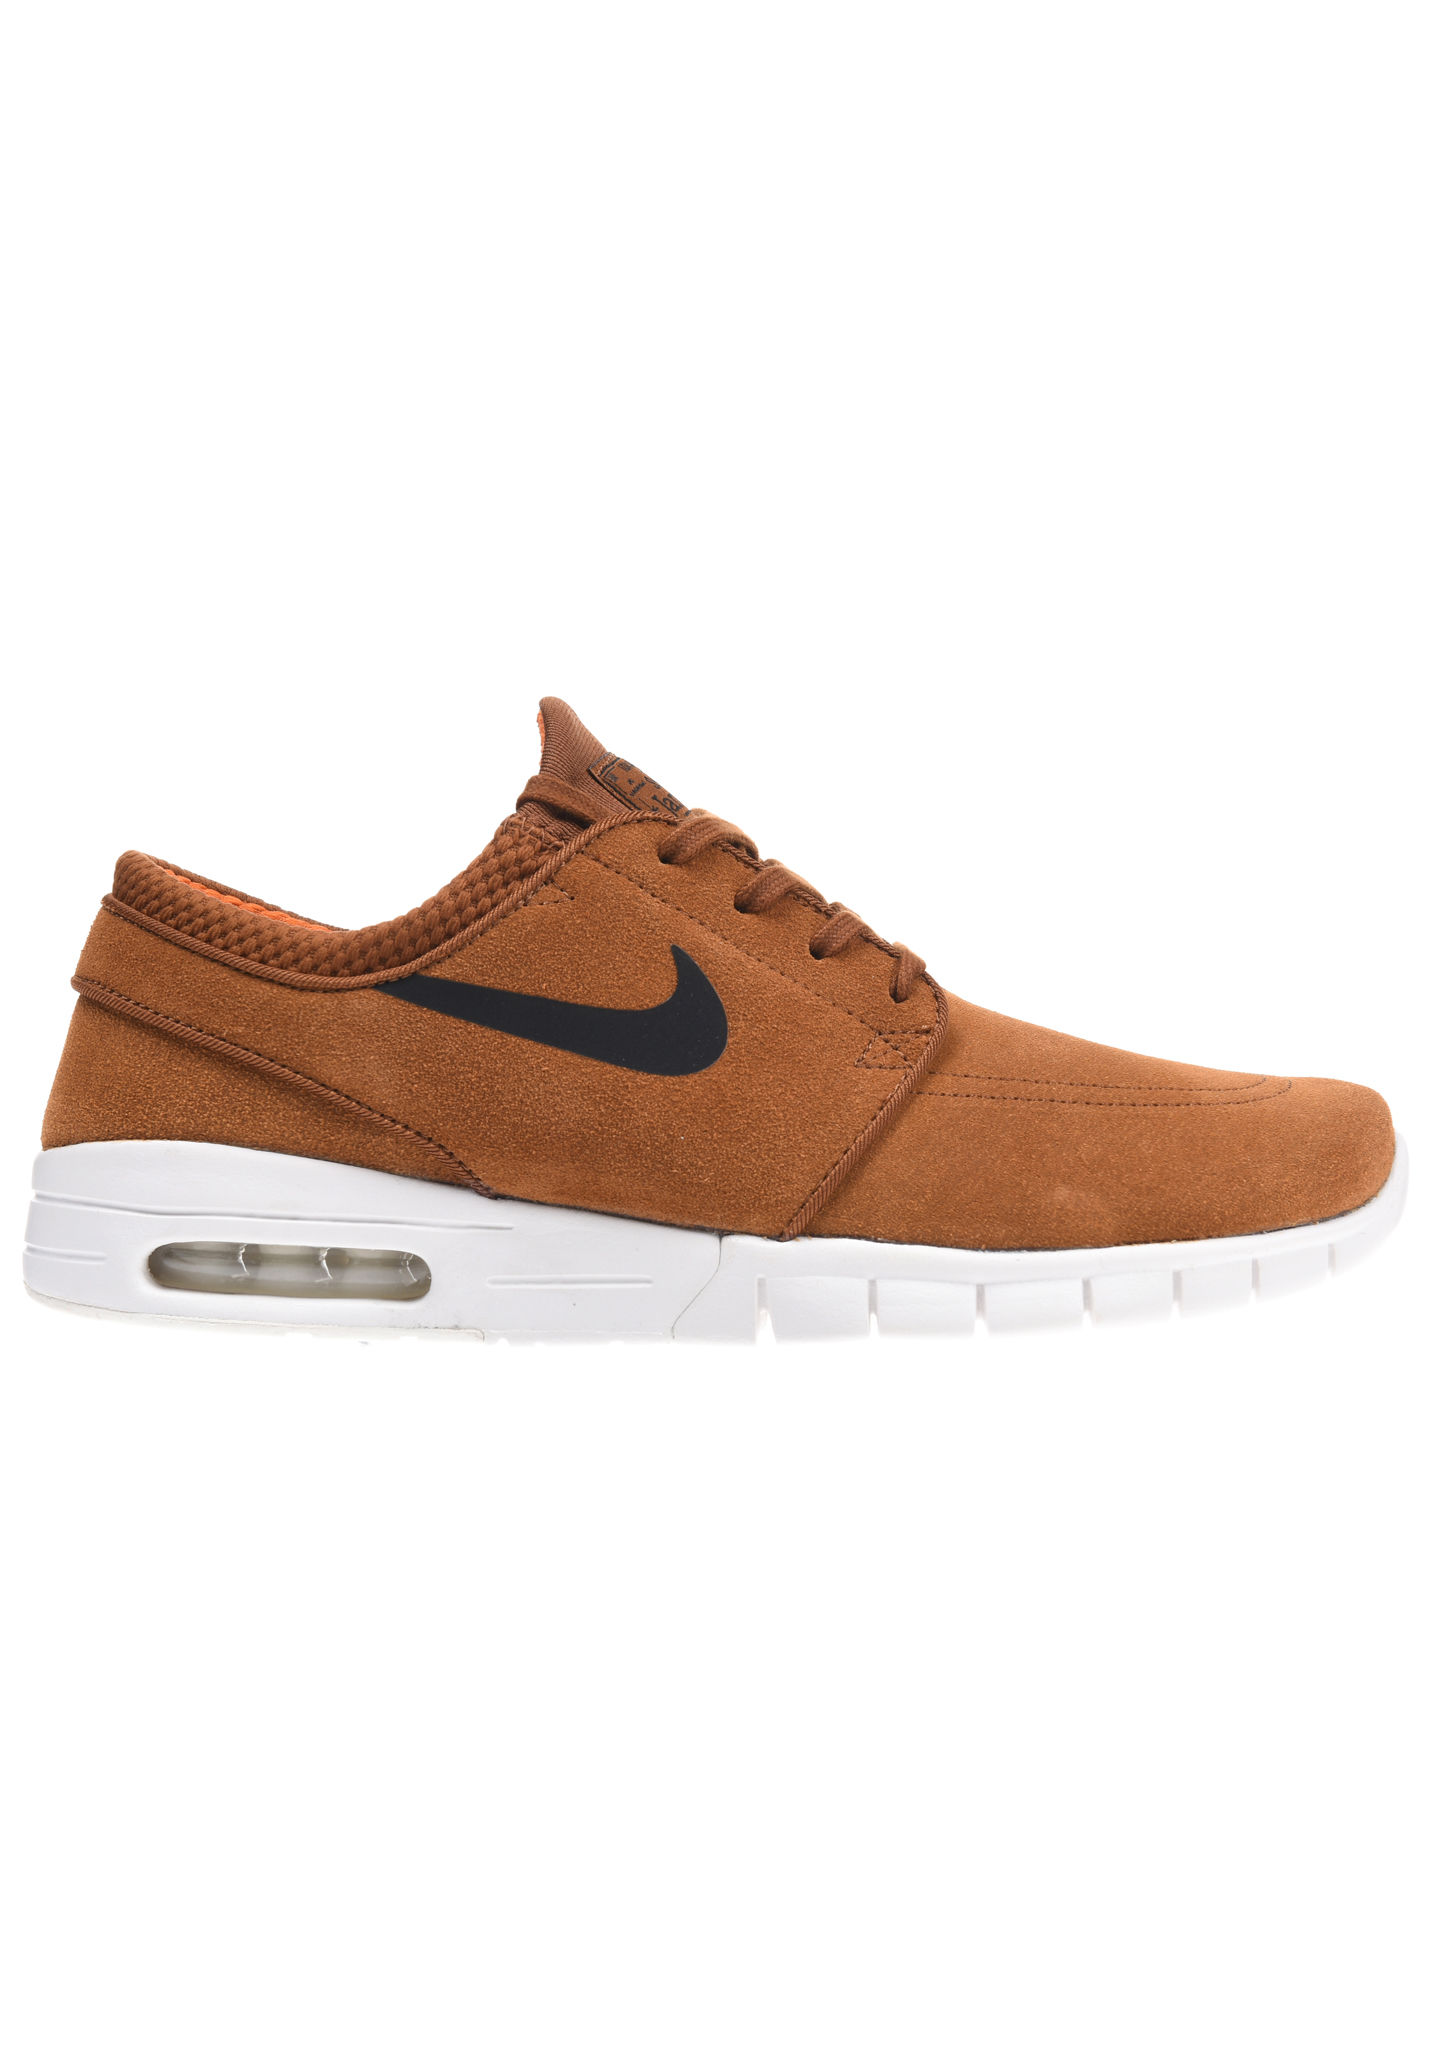 2274a1d131dc NIKE SB Stefan Janoski Max L - Sneakers for Men - Brown - Planet Sports